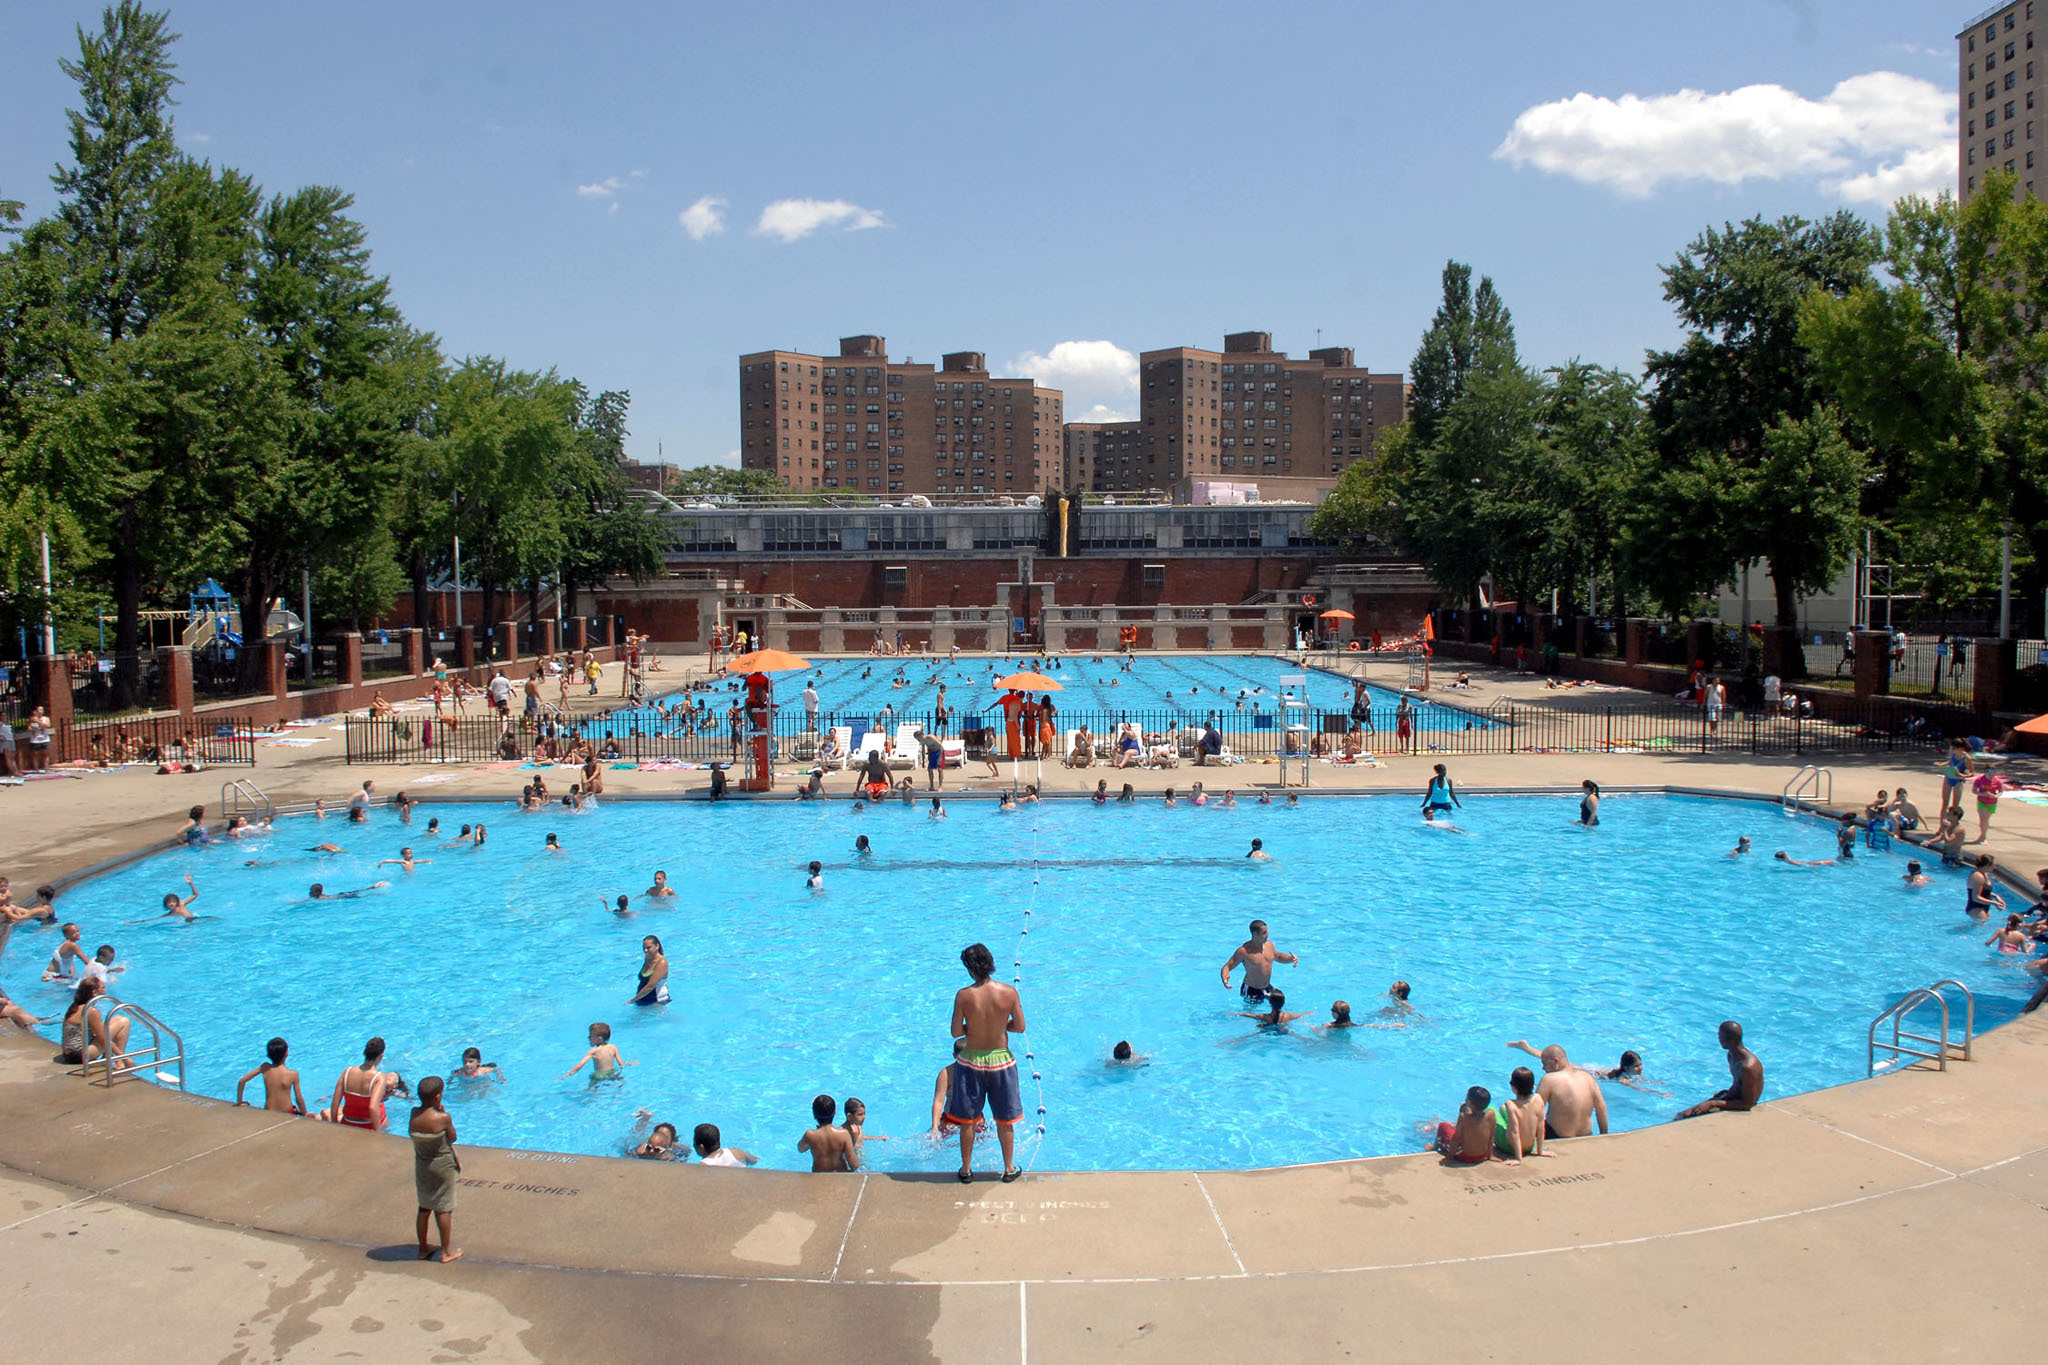 12 of the best public pools nyc has for swimming in summer for Good place to fish near me